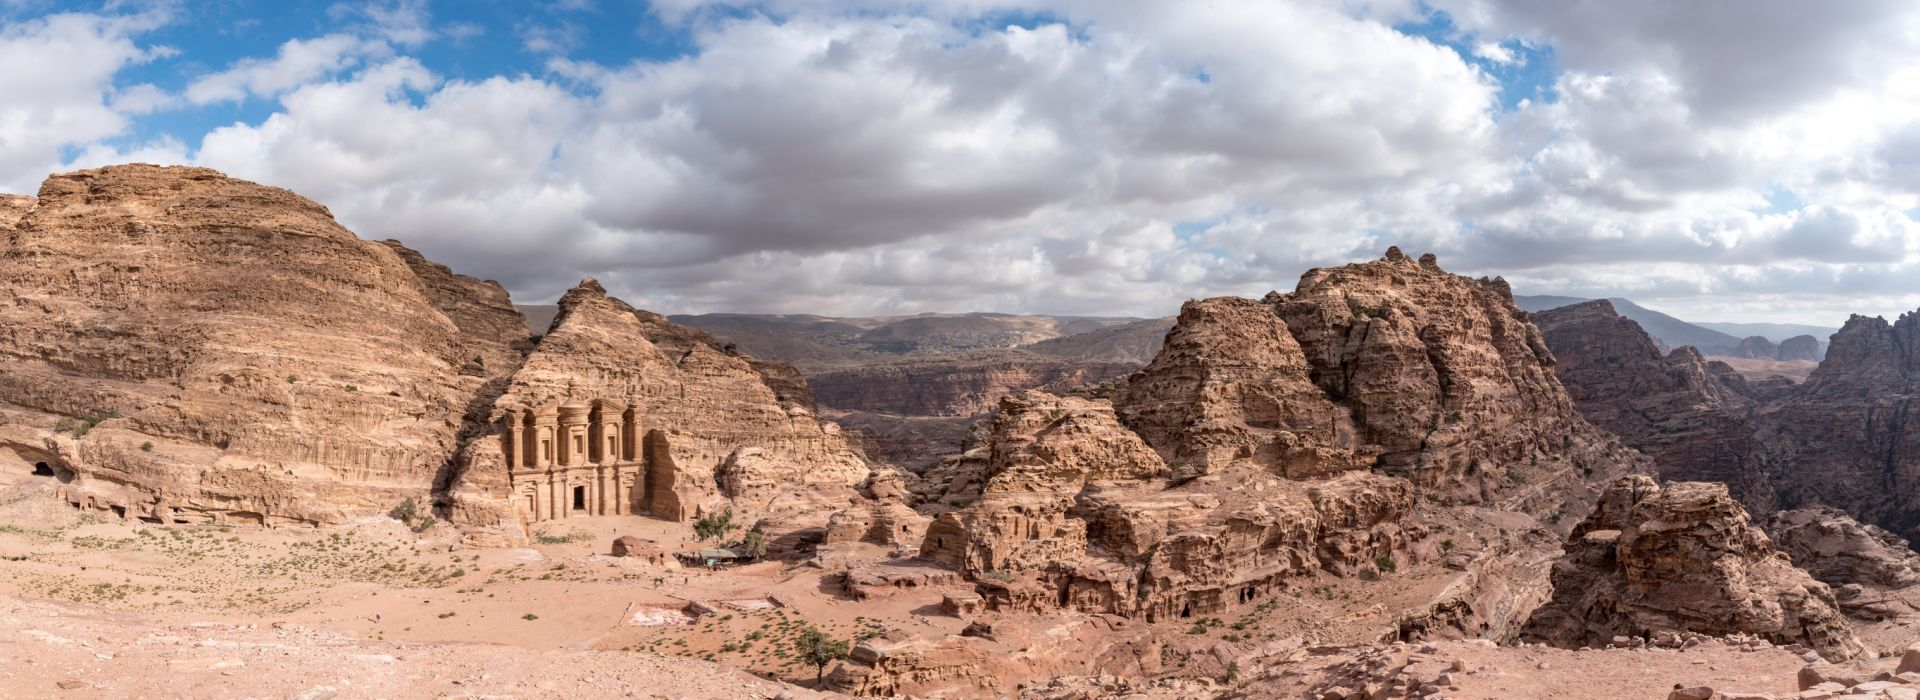 Adventure and sport activities Tours in Jordan